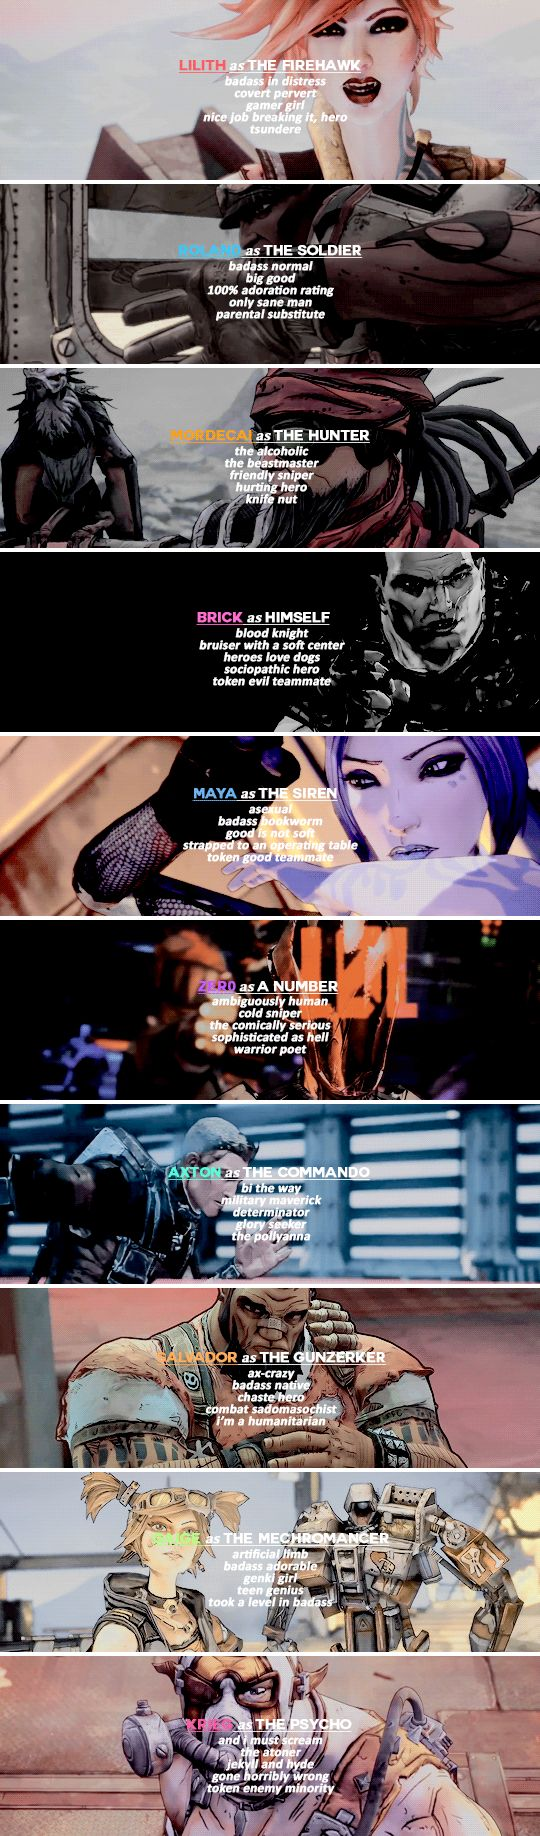 Borderlands Gen 1&2 Vault Hunters → TvTropes